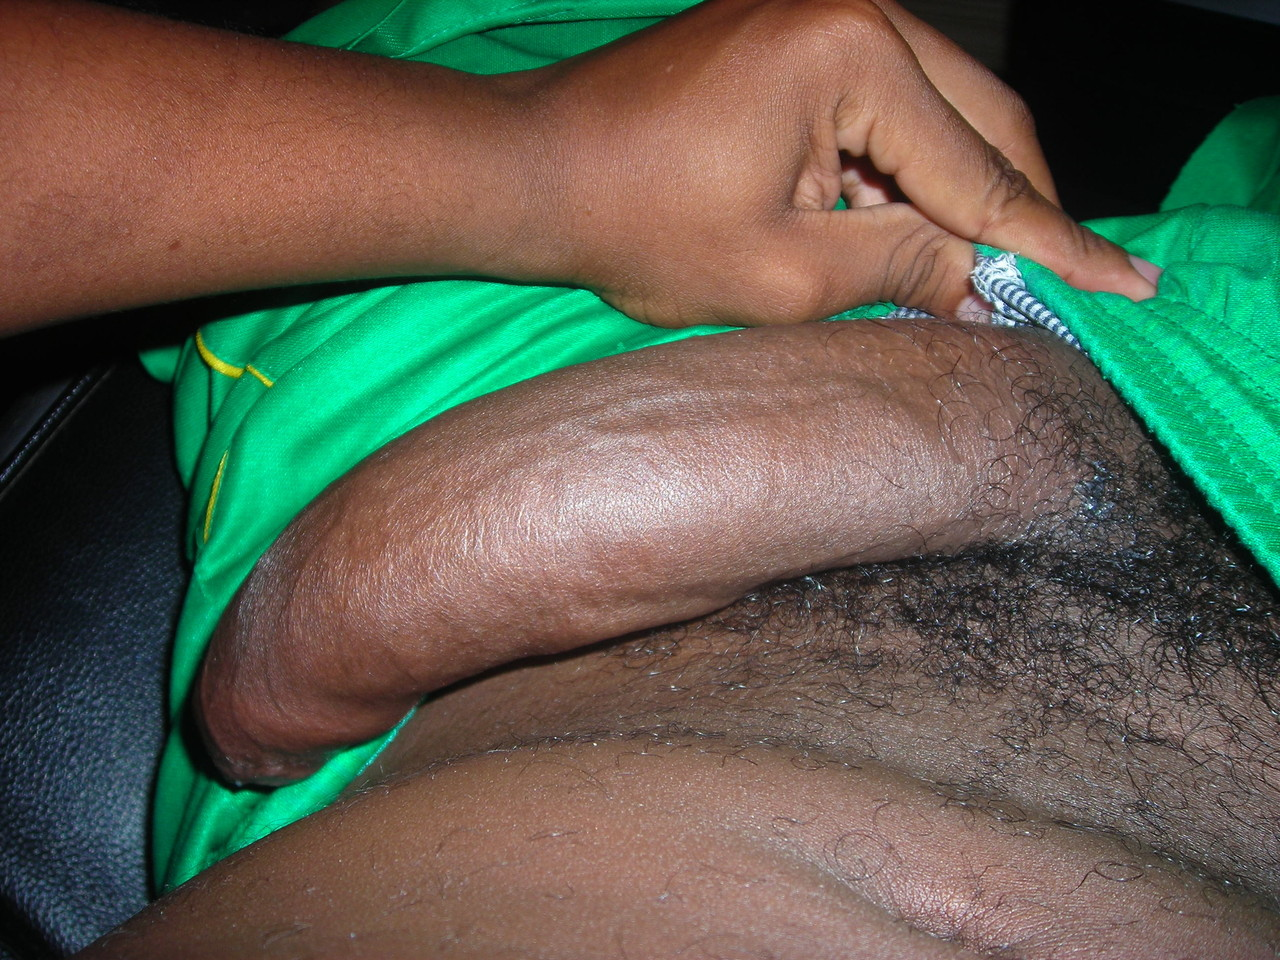 Black Men With Big Dick S Tumblr